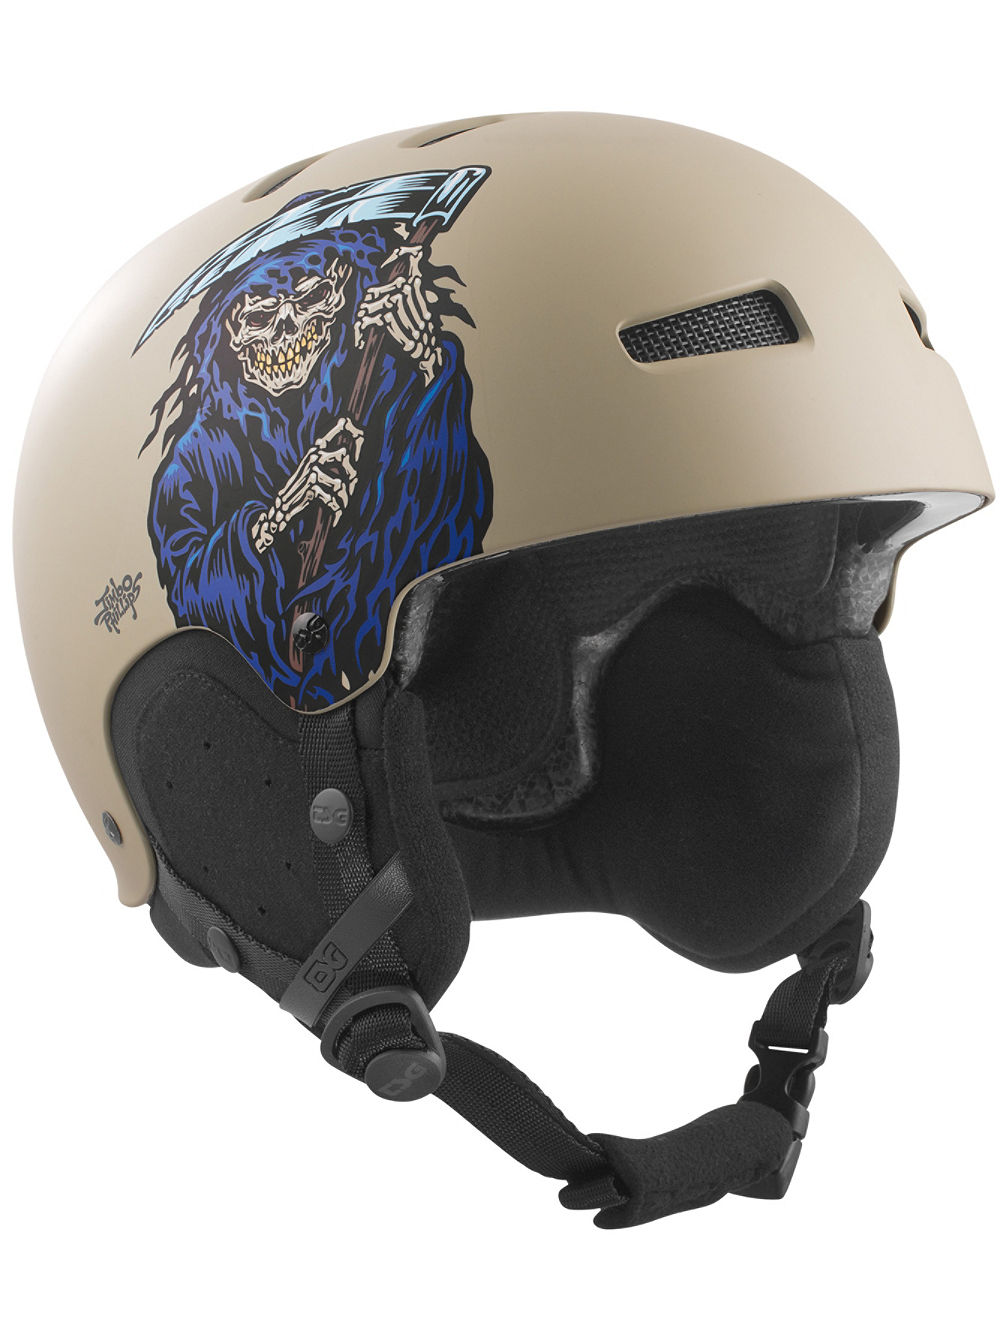 Gravity Art Design Jimbo Phillips Helmet